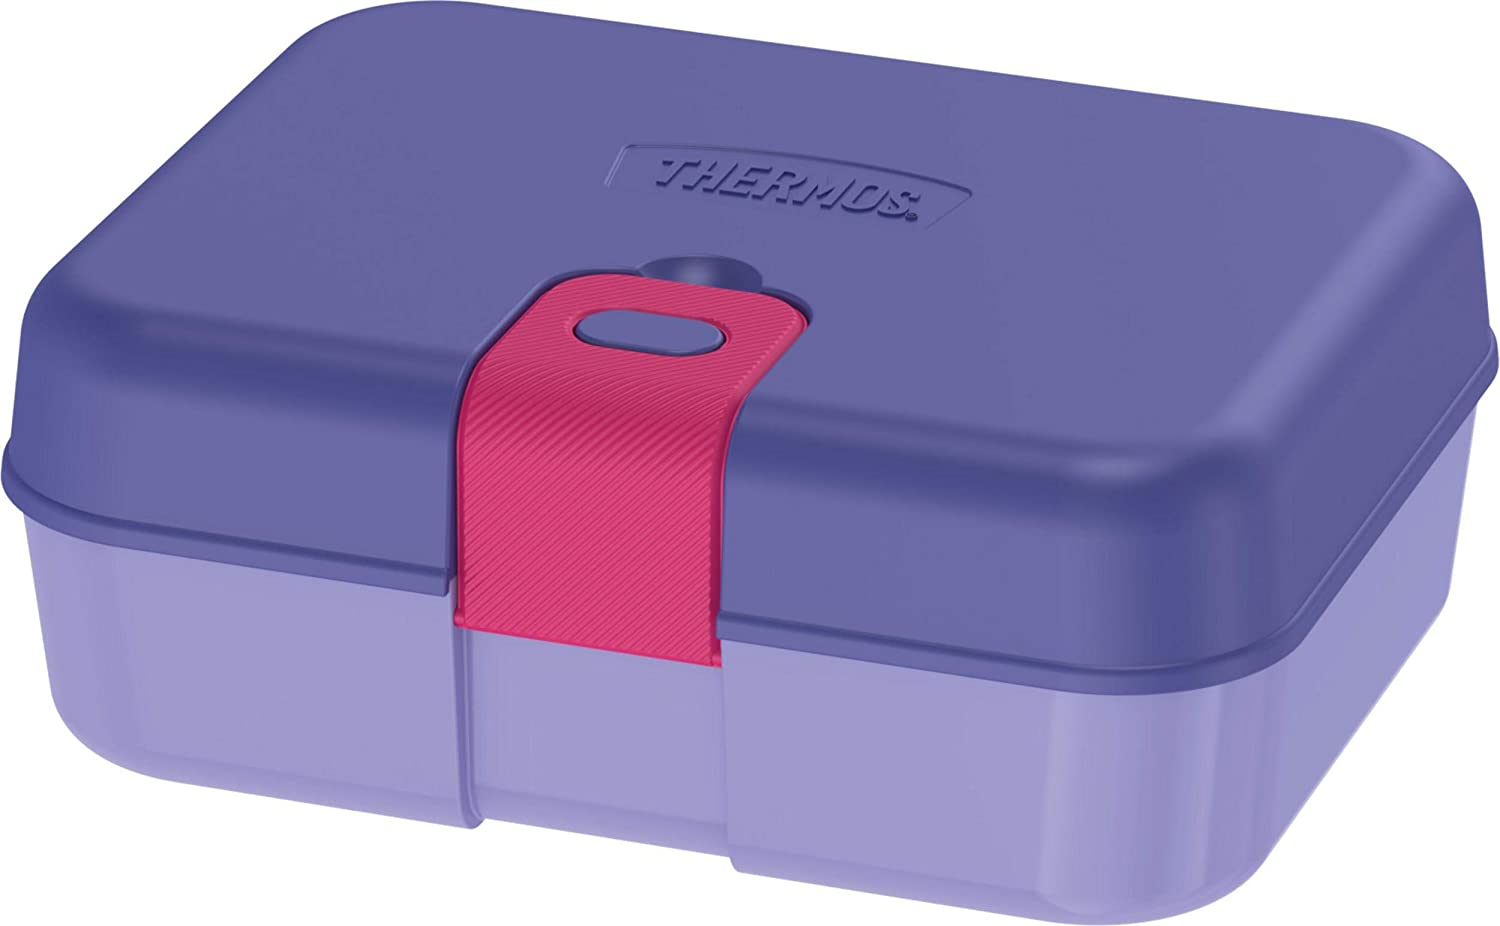 Thermos Kids Freestyle Kit Purple Food Storage System, 8 piece set